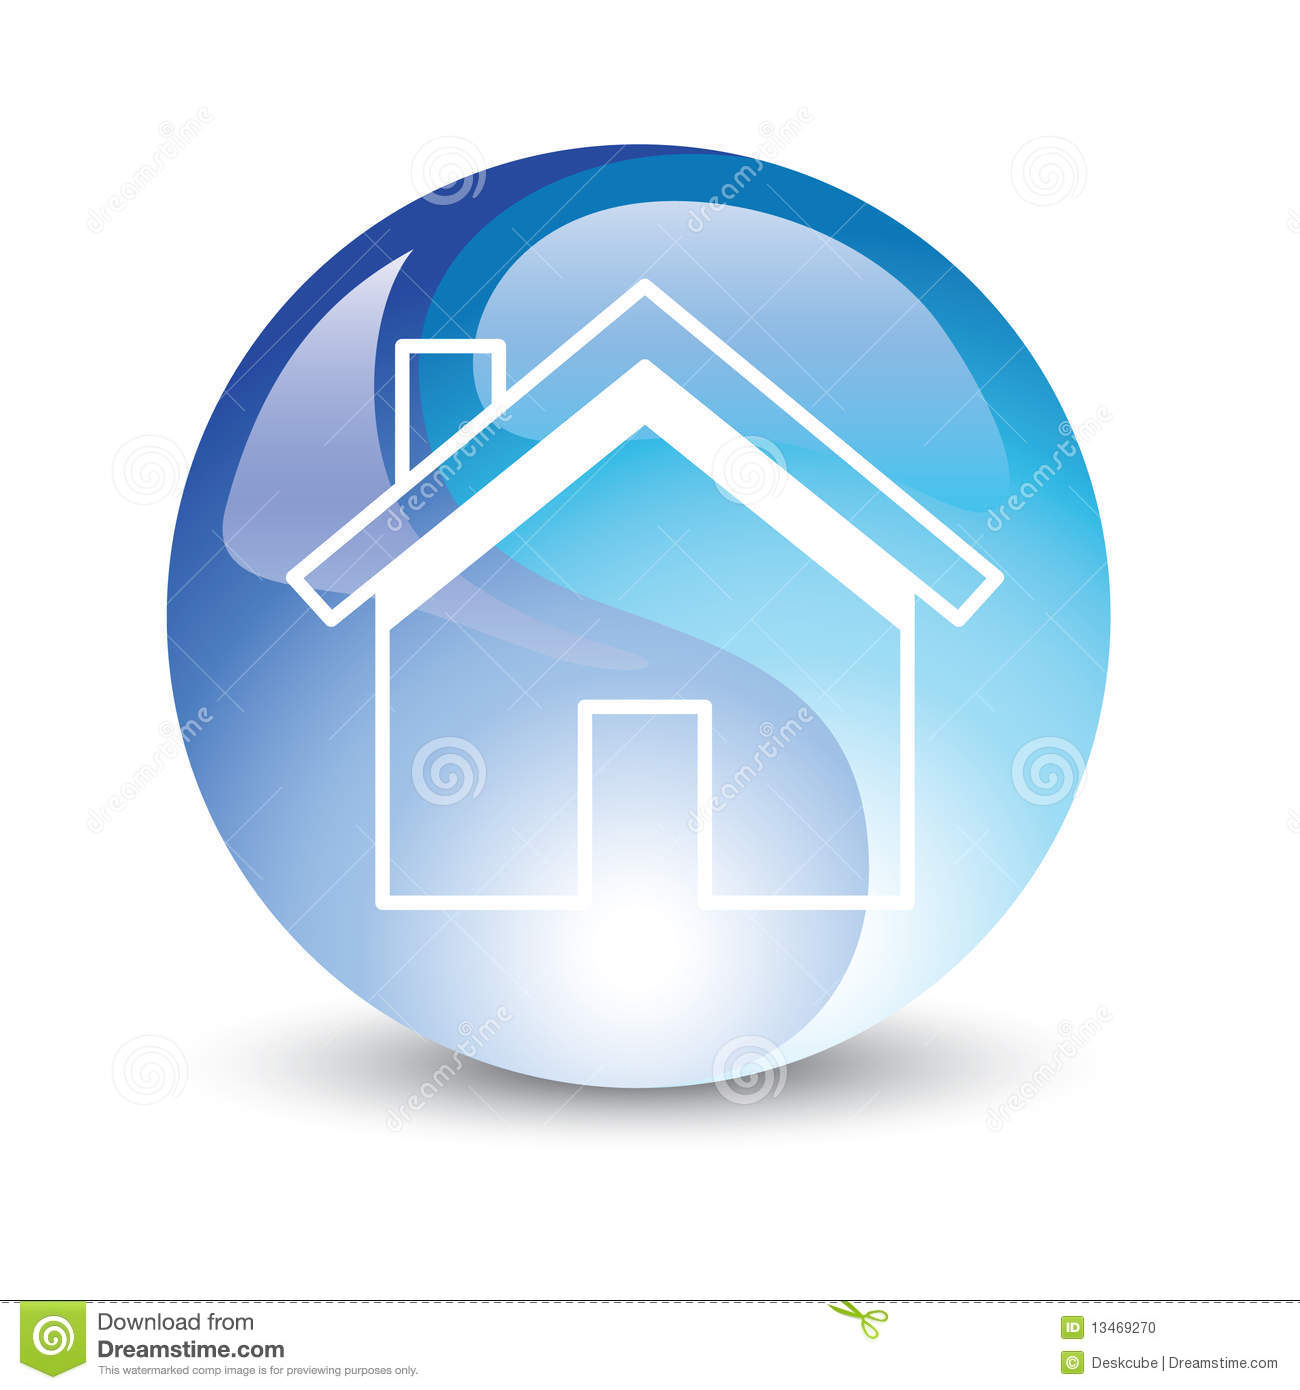 house icon internet stock vector illustration of small